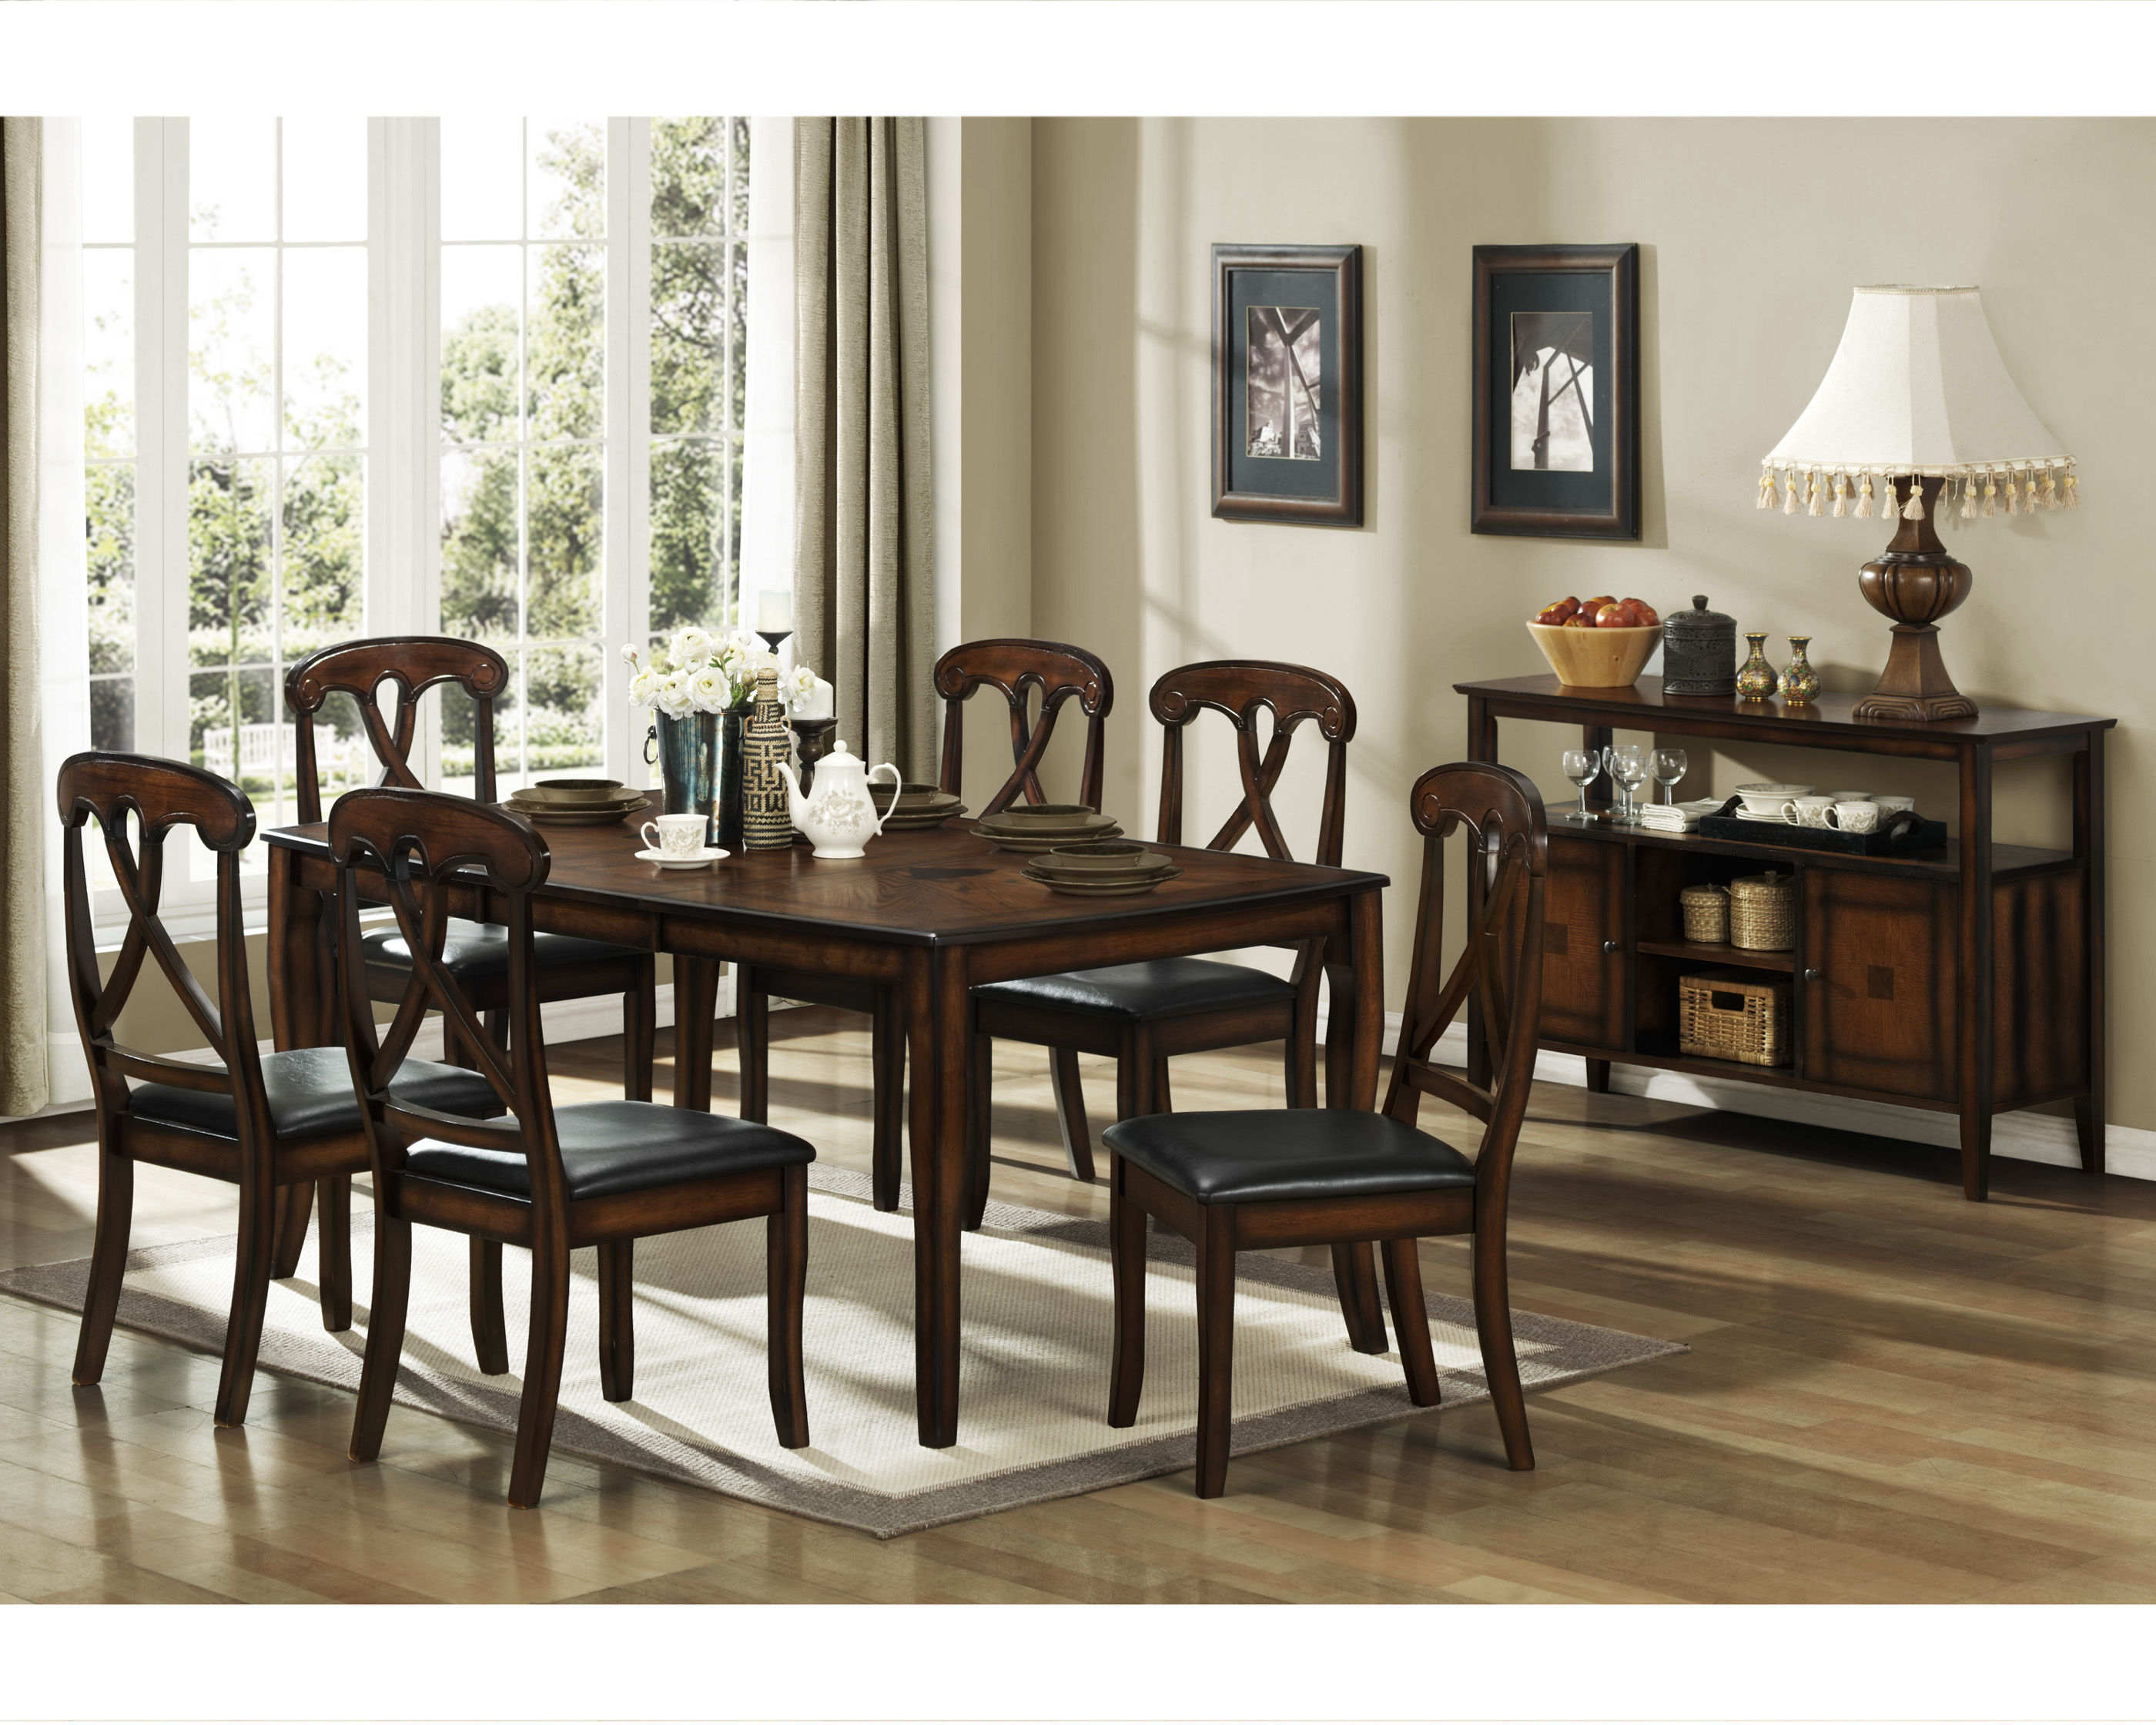 Kinston distressed oak wood dining table the classy home for Best transitional dining rooms